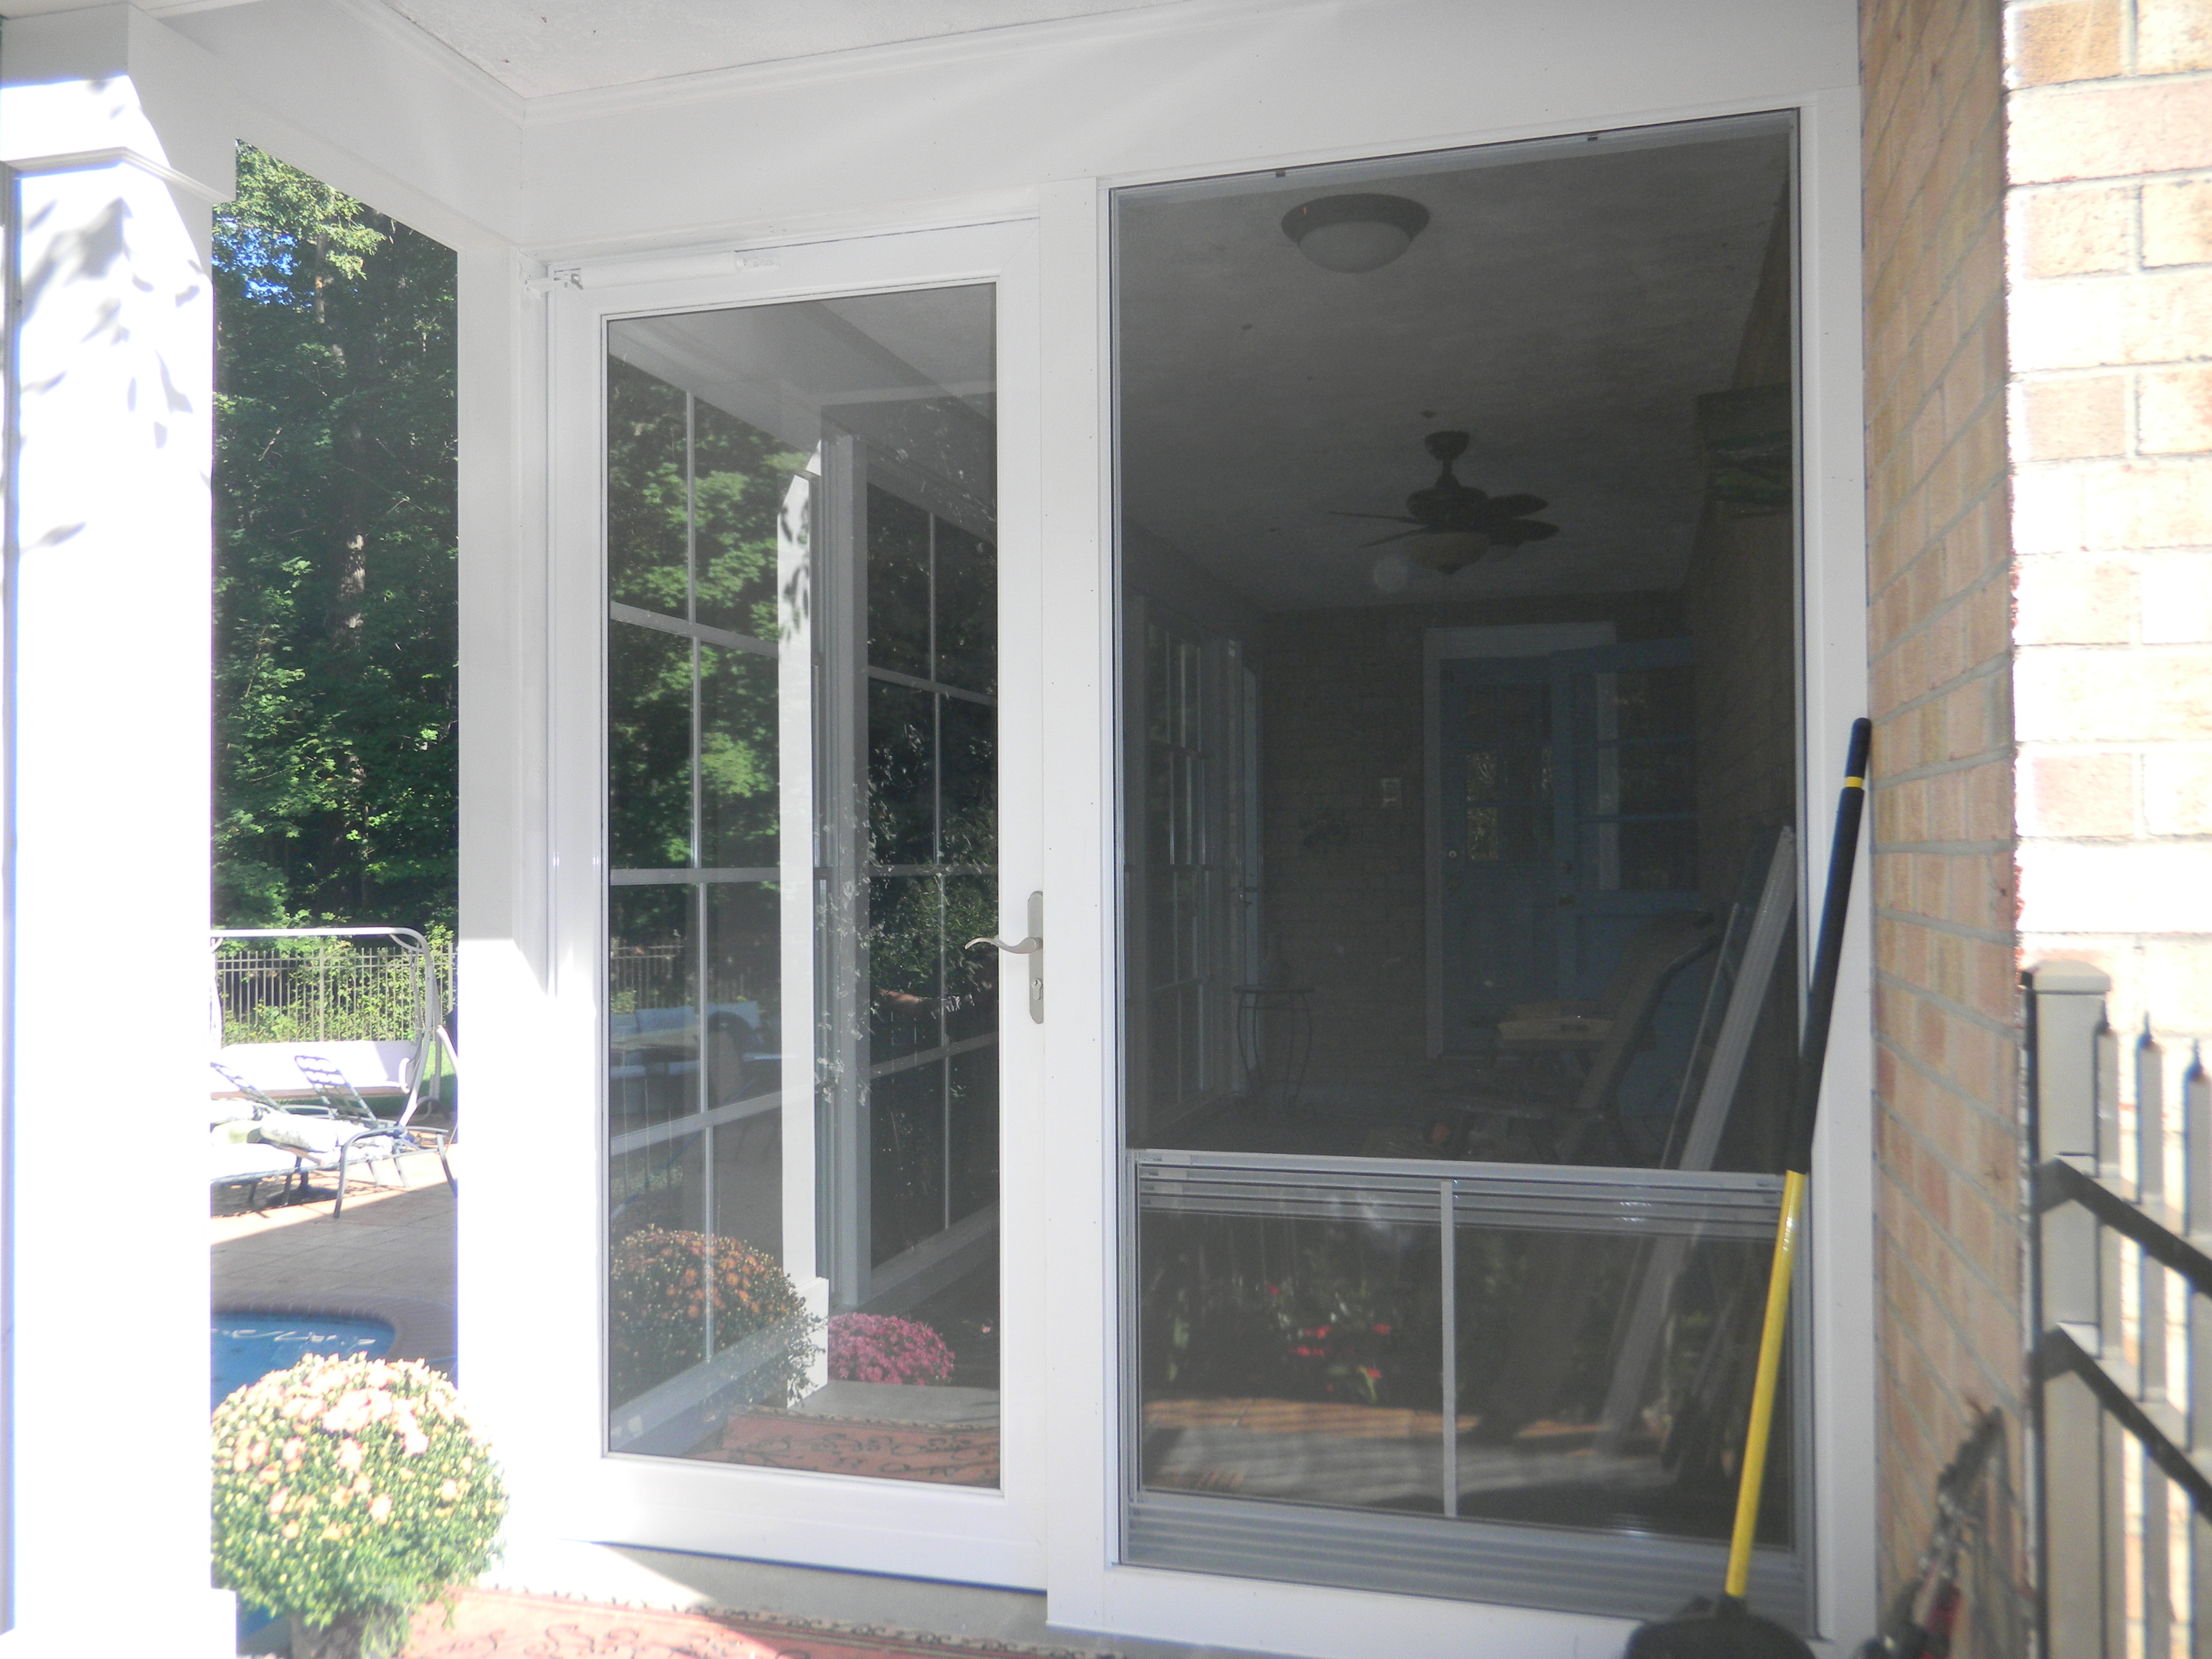 end wall with new storm door and vertical four track